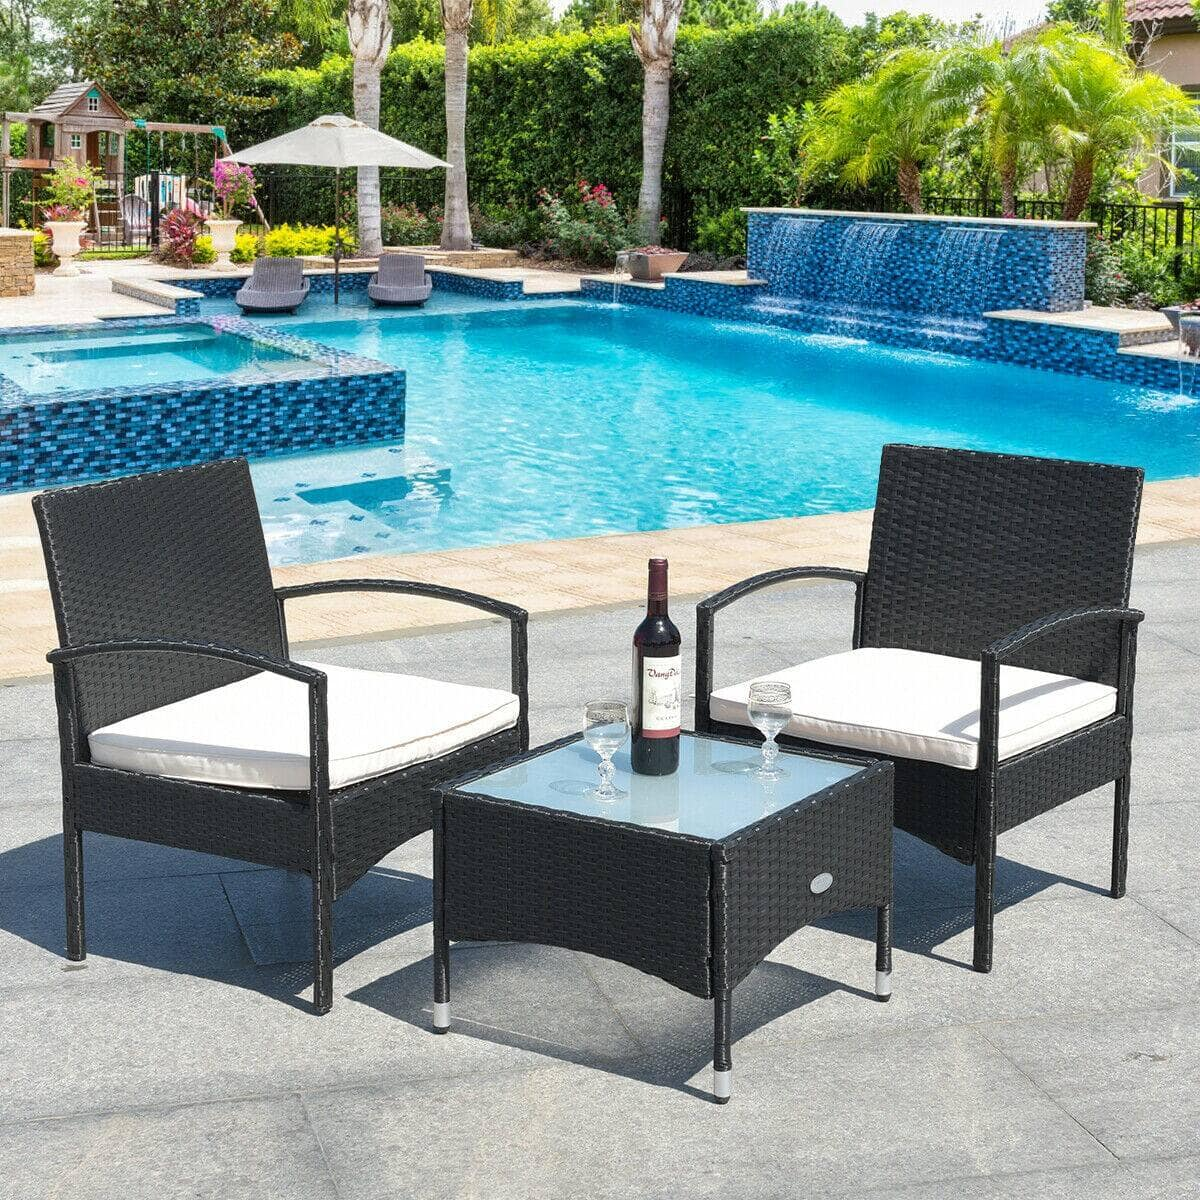 3 Pcs Patio Wicker Rattan Furniture Set with White Cushions $120.95 + Free Shipping